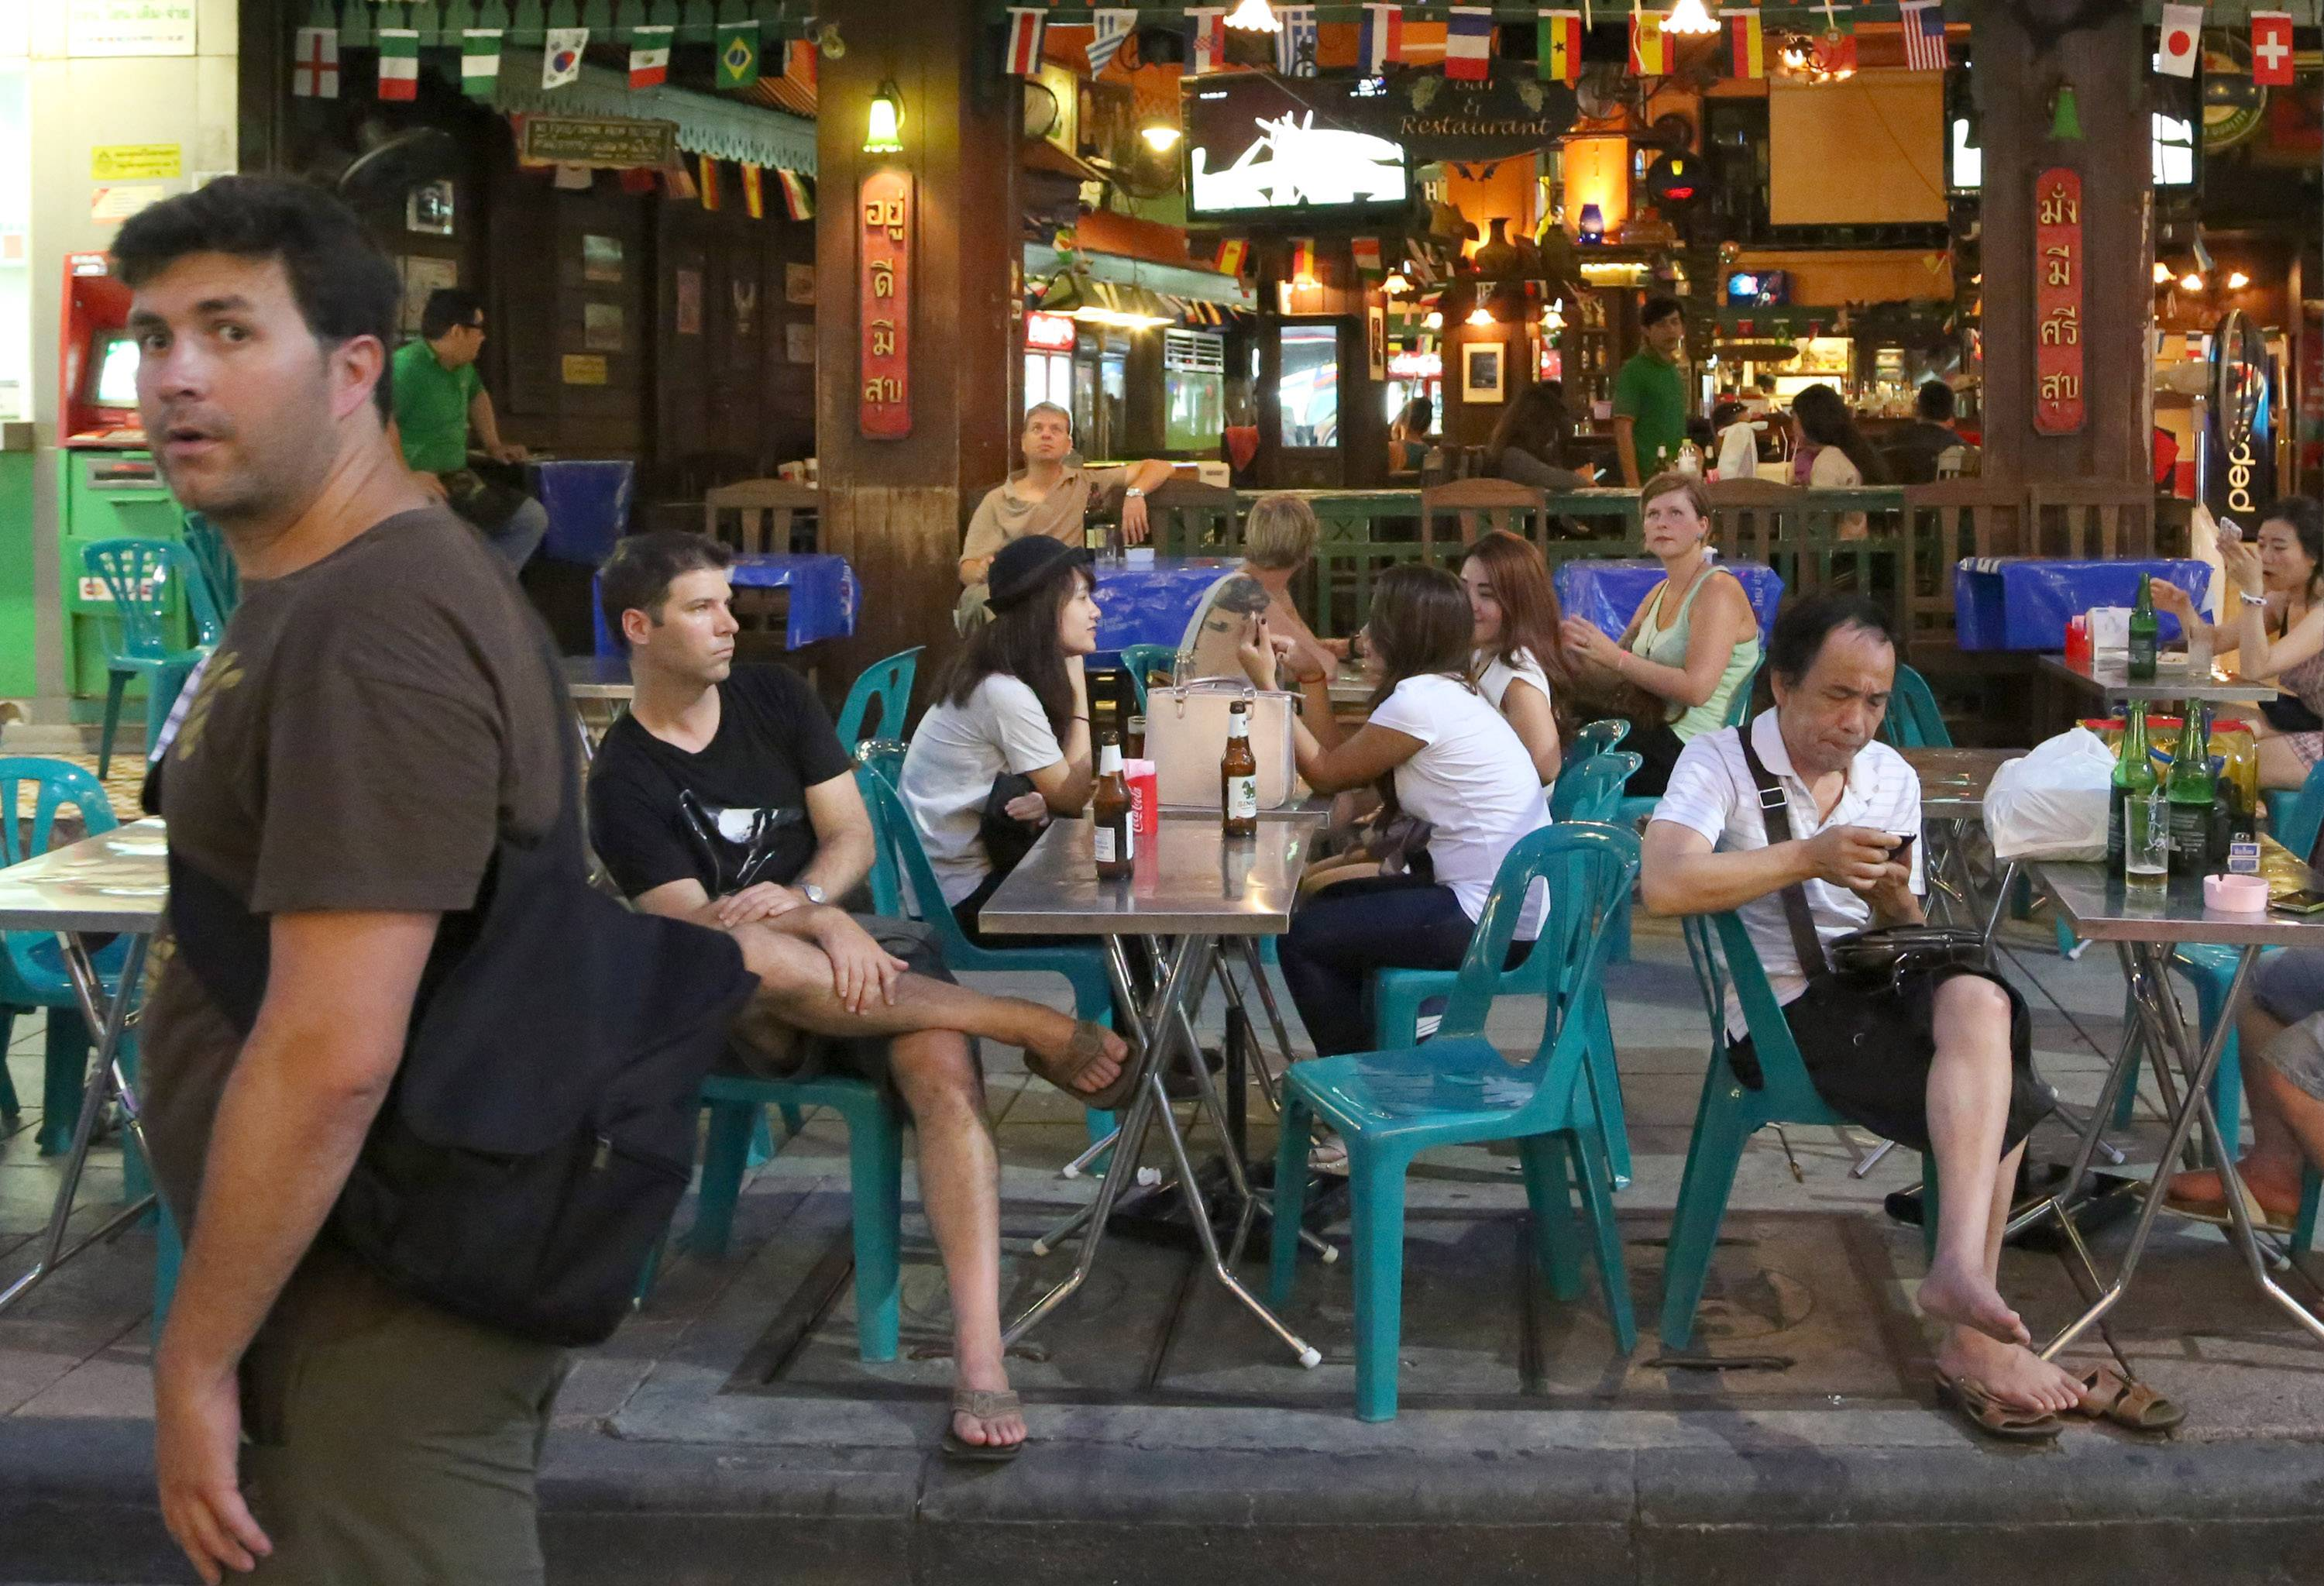 A tourist, left, walks past as others sit Saturday at a restaurant in Bangkok's Khaosan road, Thailand.